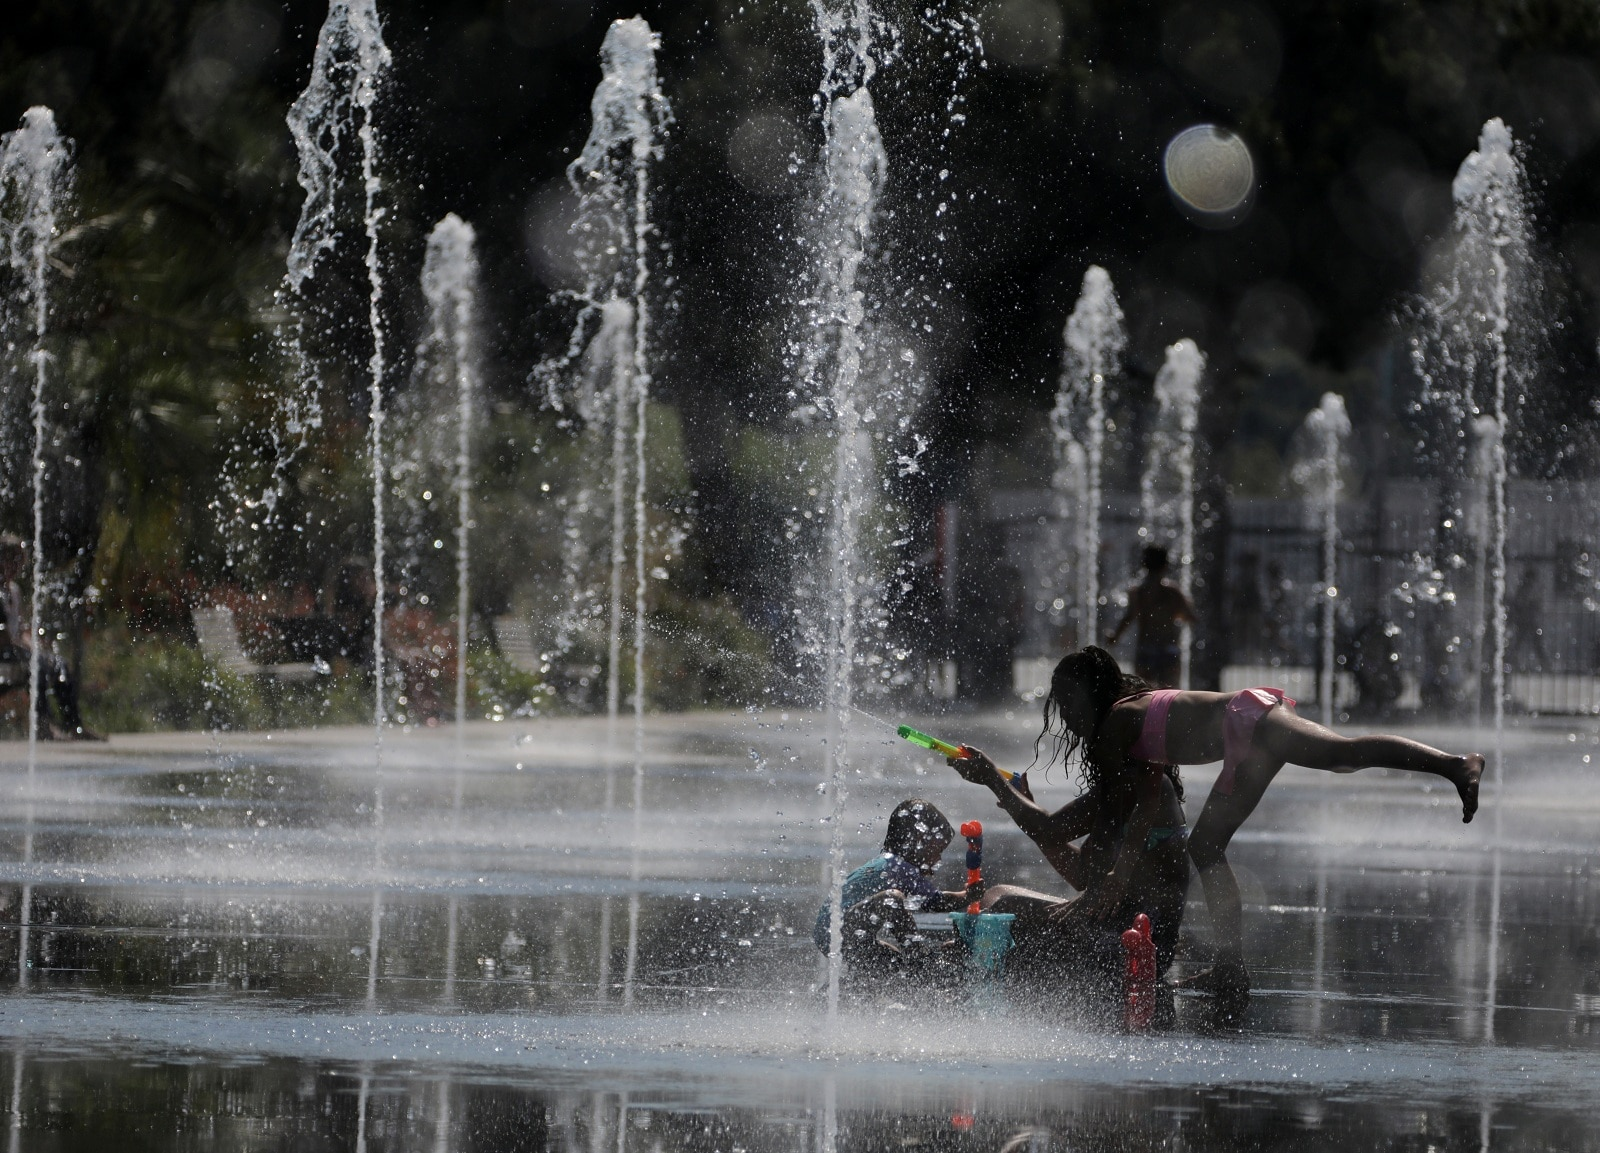 People cool off in a fountain in Nice as a heatwave hits much of the country, France, June 27, 2019. REUTERS/Eric Gaillard